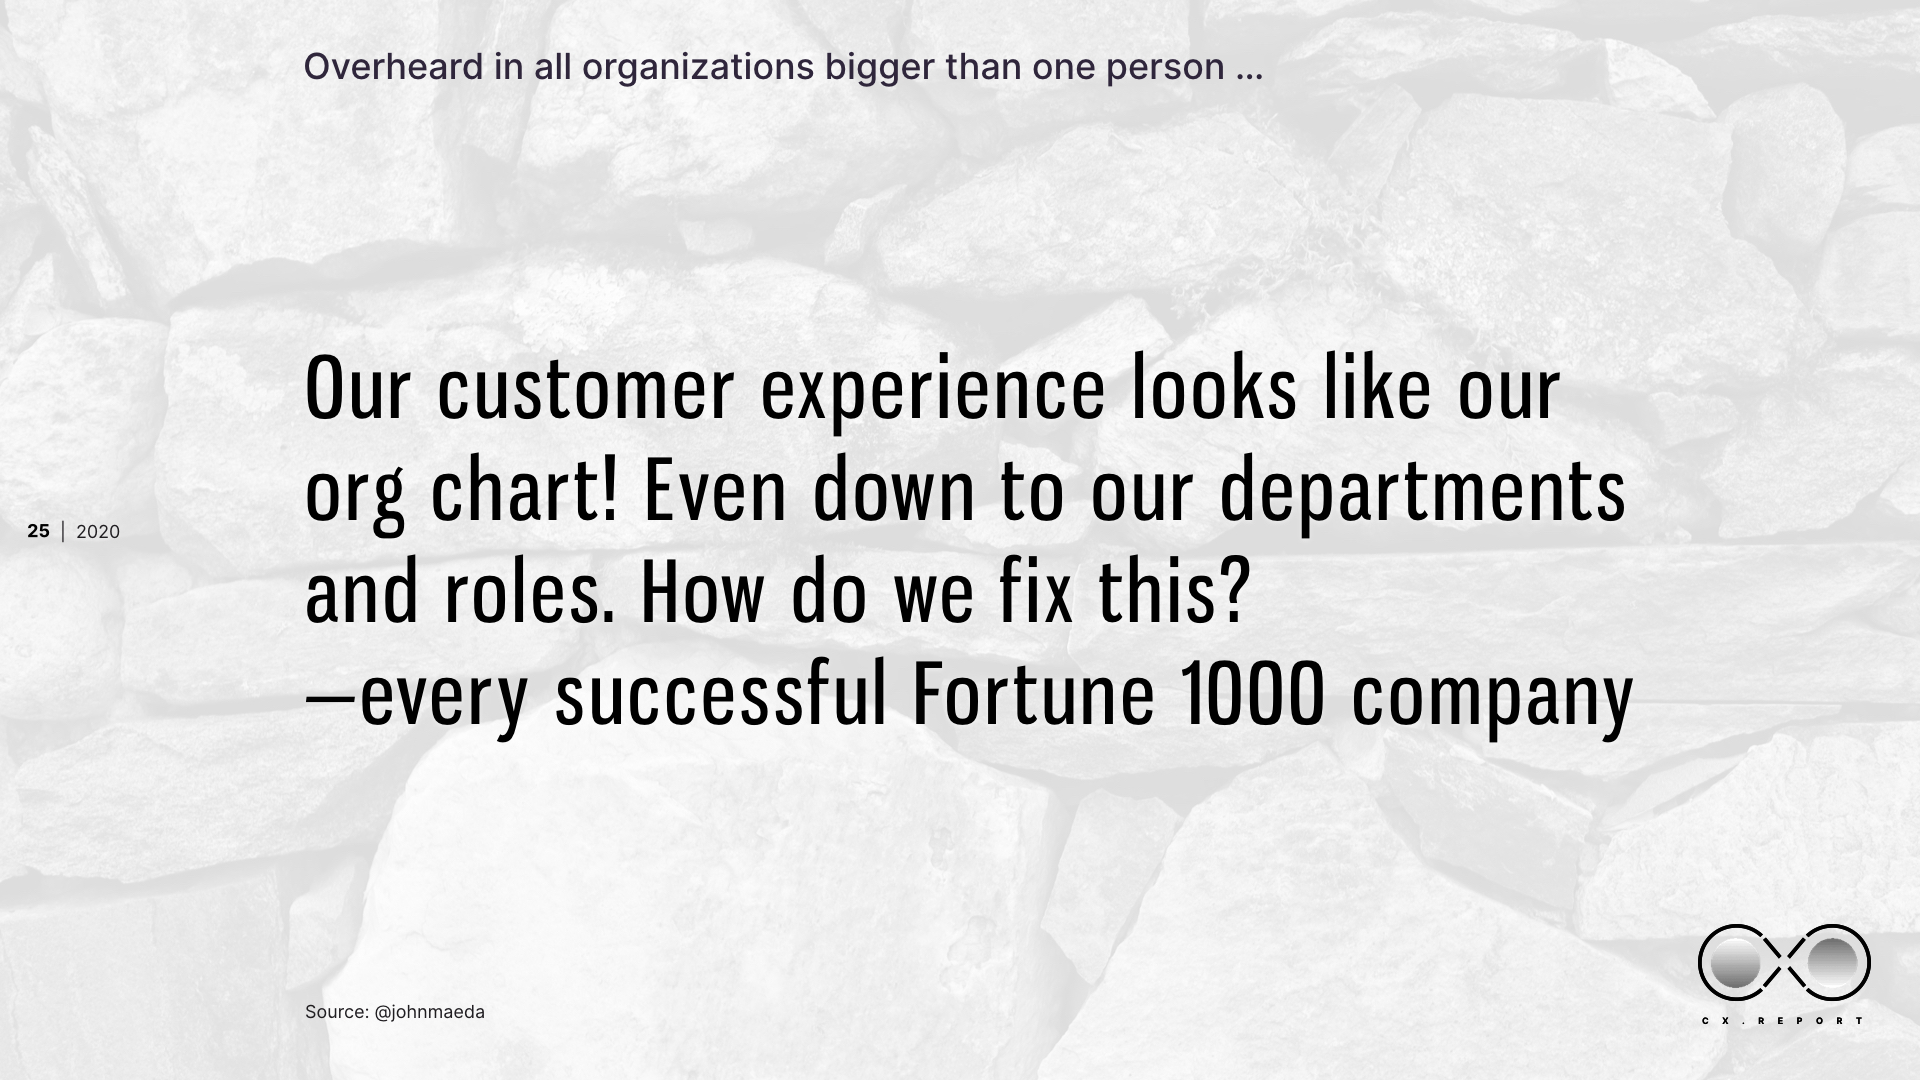 Customer experience looks like an org chart quote.